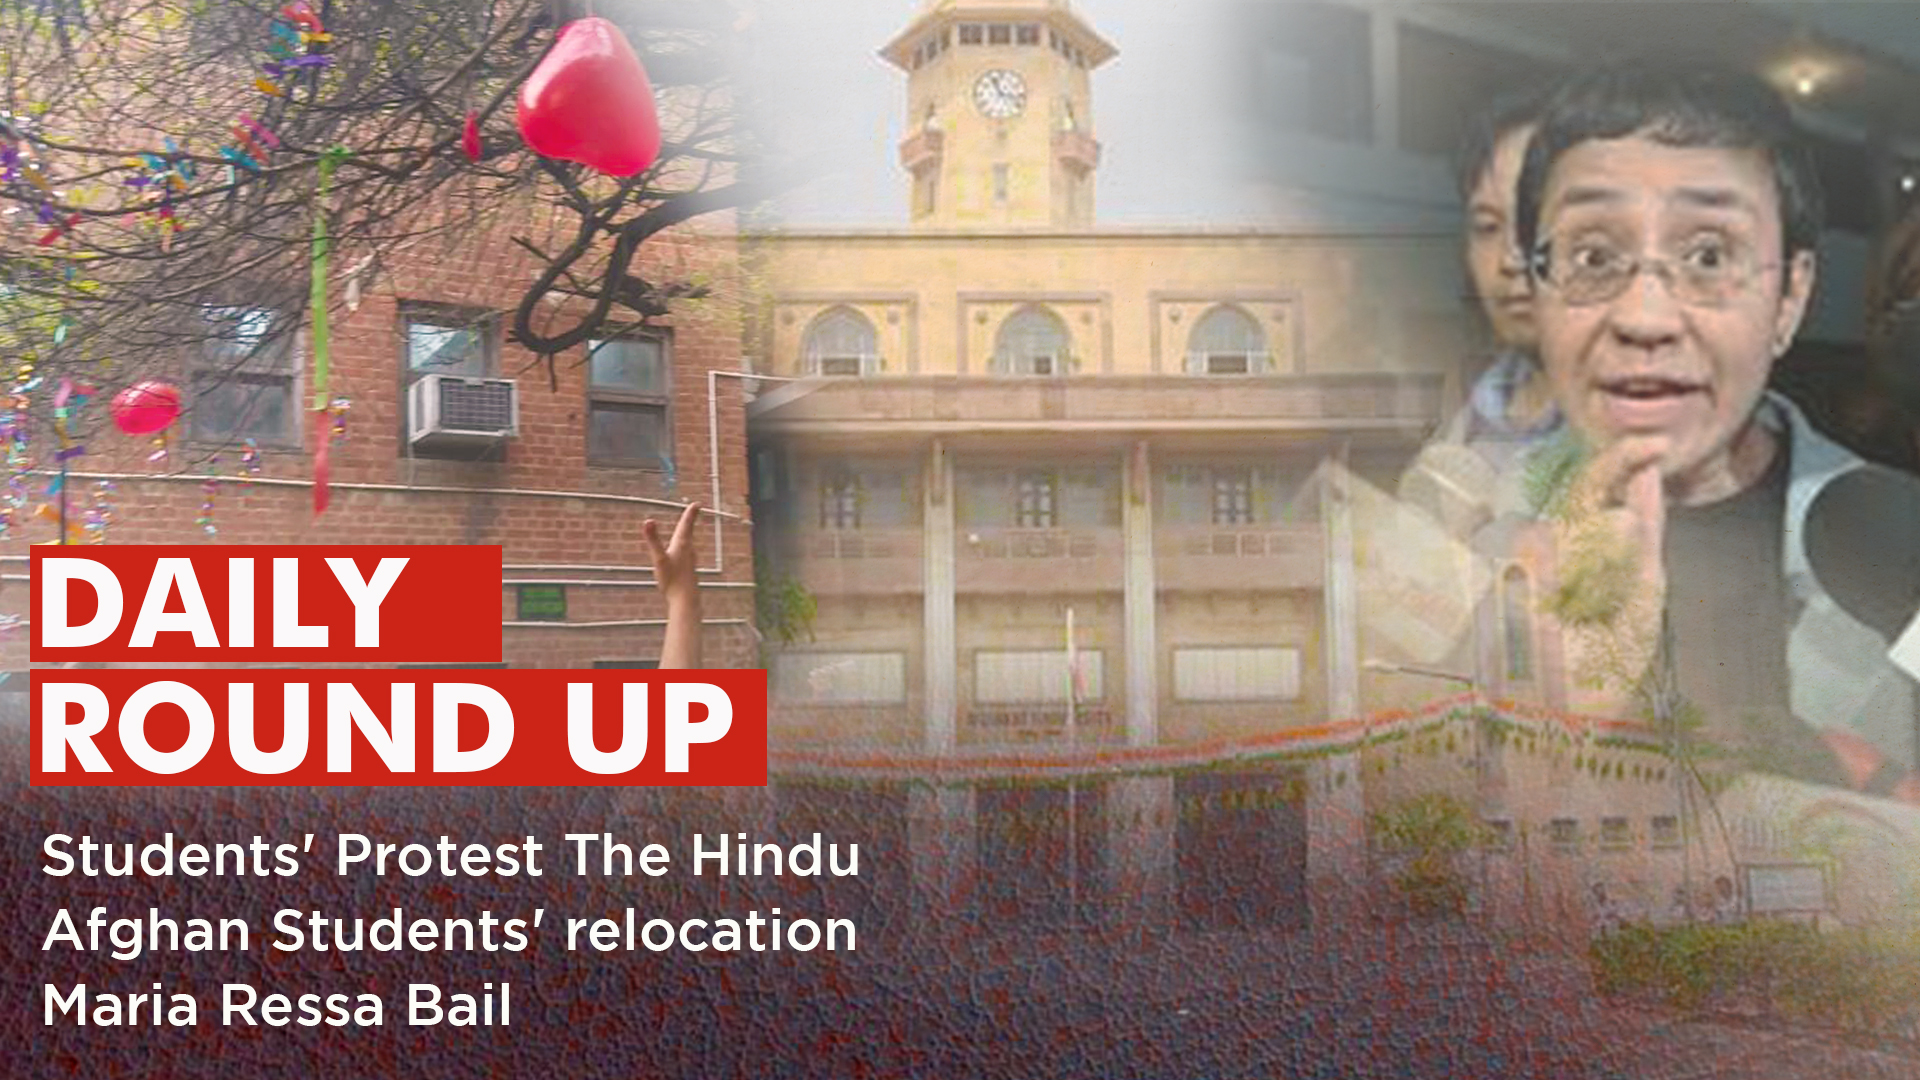 Daily Round-up Ep. 47 – Row Over Virgin Tree in Hindu College, Afghan Students' Relocation and Journalist Maria Ressa's Bail